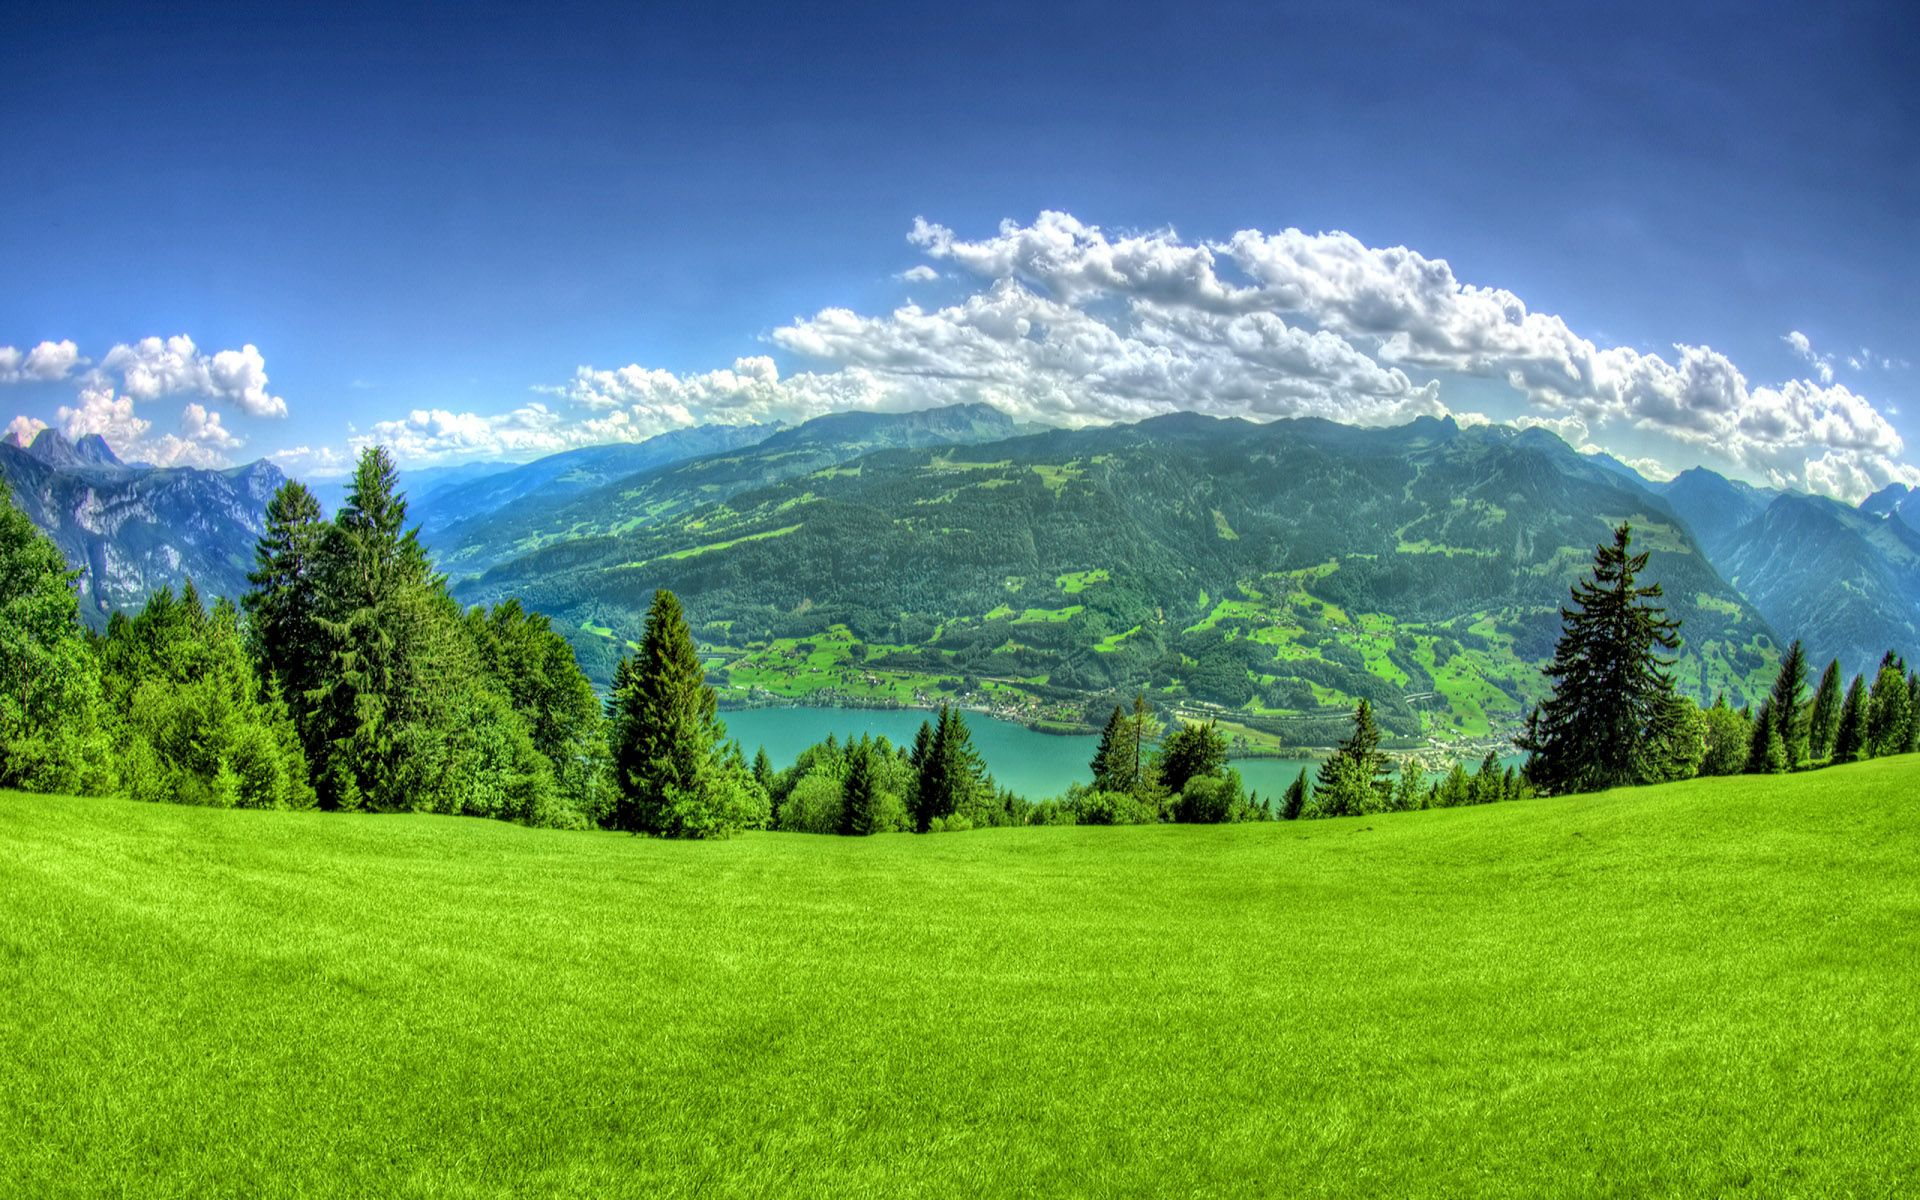 Green Grass And Mountain 1920x1200 Wallpapers 1920x1200 Beautiful Nature Wallpaper Beautiful Nature Summer Landscape